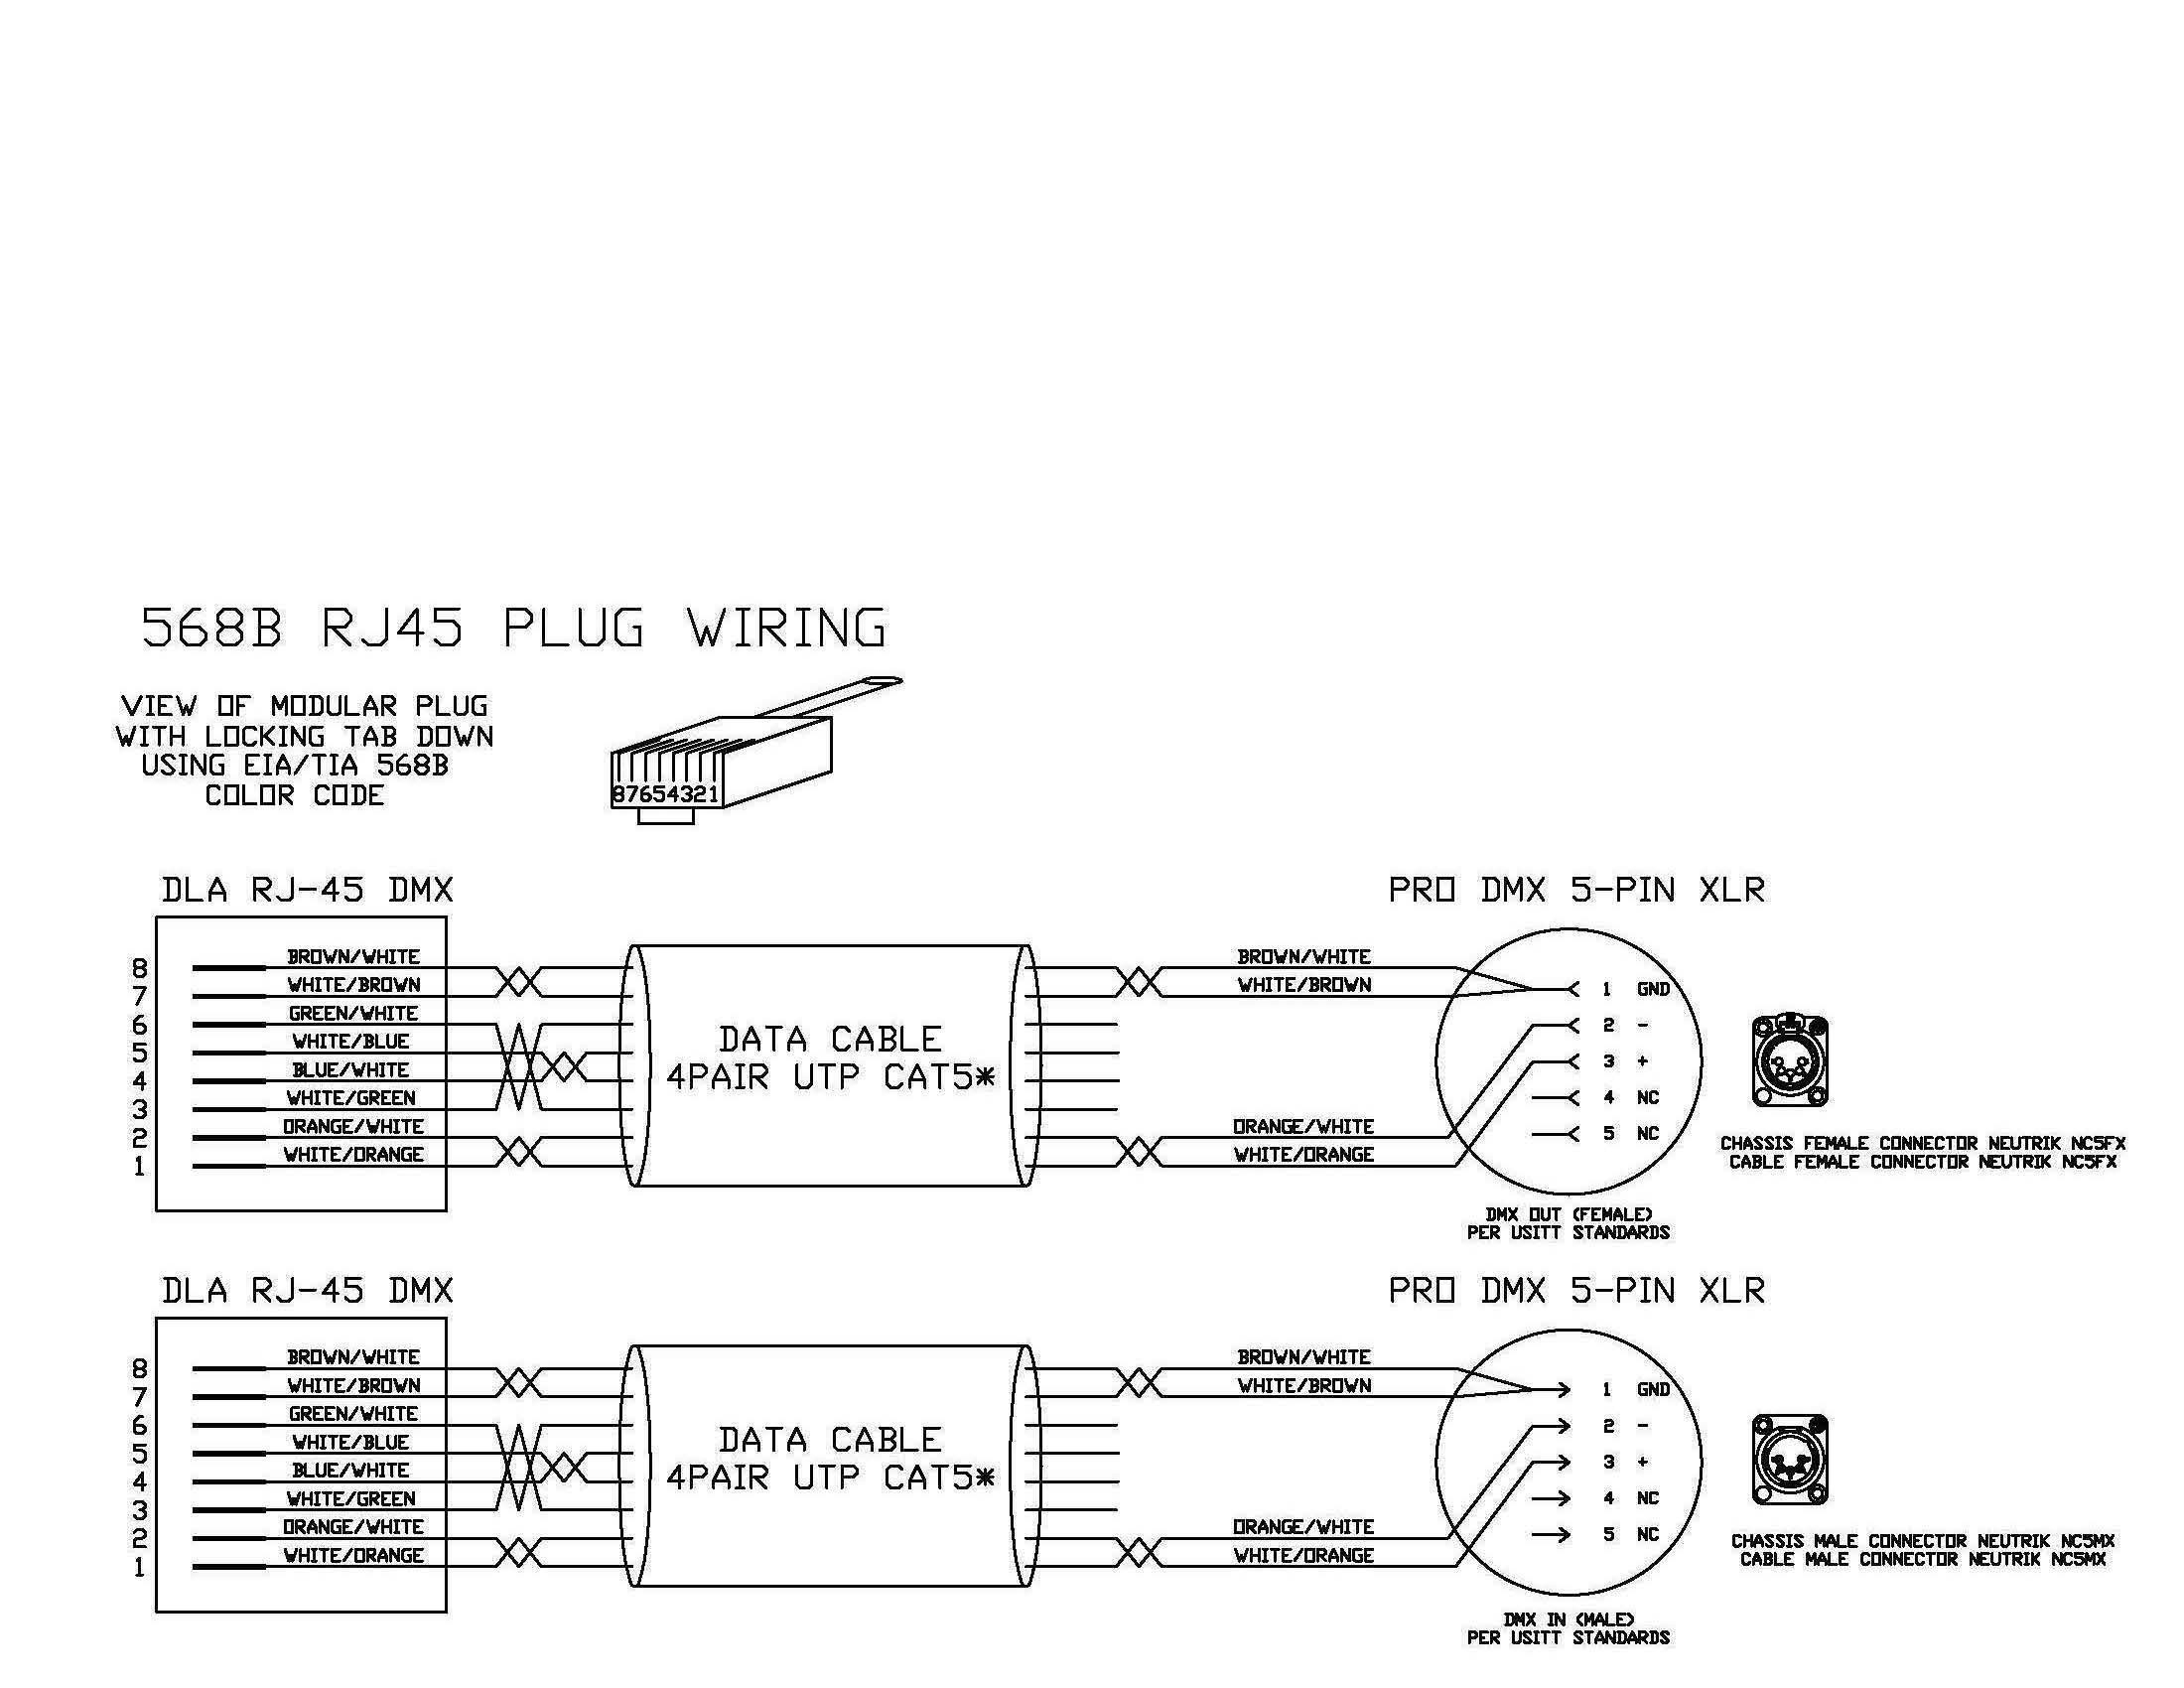 Xlr To Trs Wiring Diagram | Wiring Library - Trs Wiring Diagram